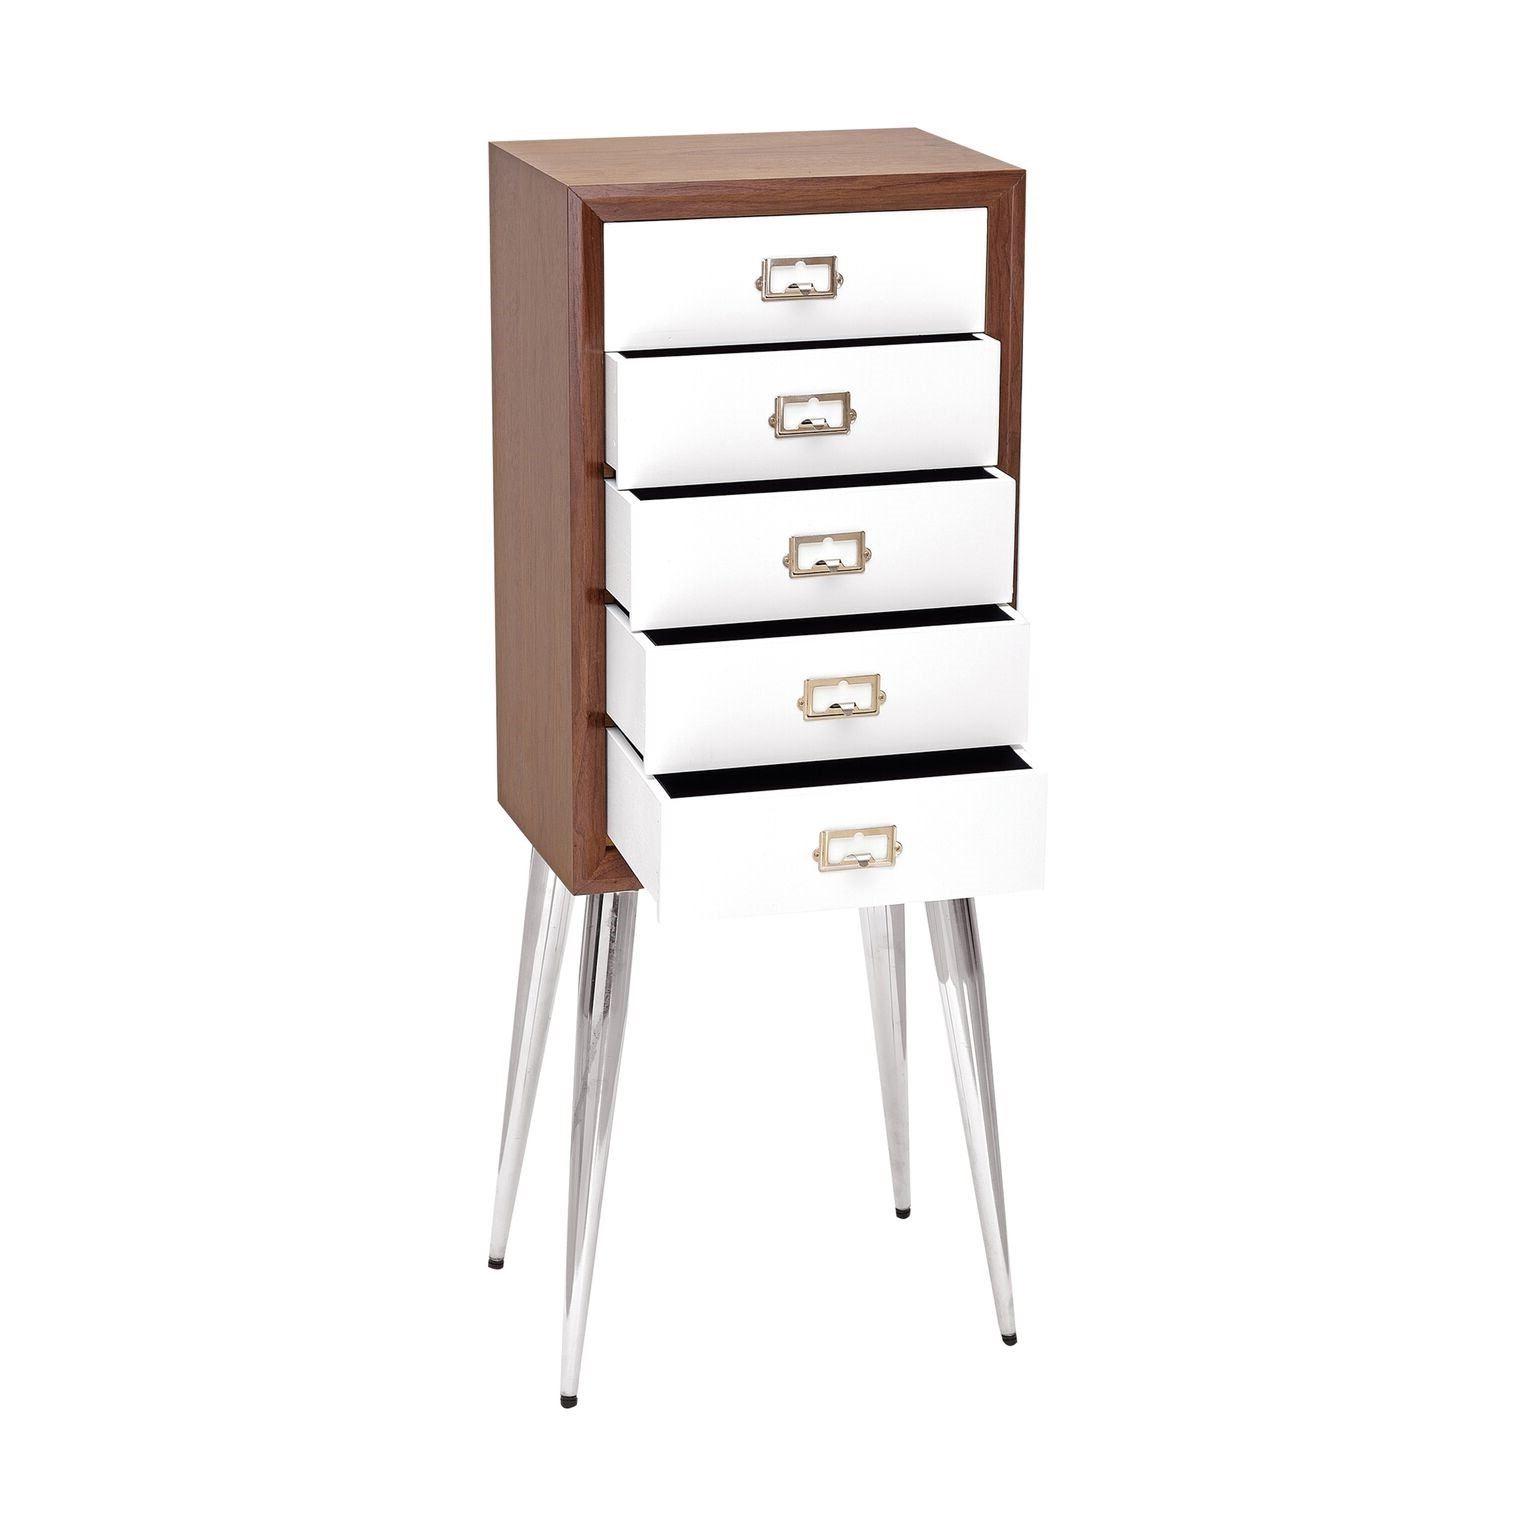 Major-Q 9097211 36'' H Contemporary Style Rectangular Cabinet Frame White Dark Mahogany Finish Metal Tapered Legs Jewelry Armoire